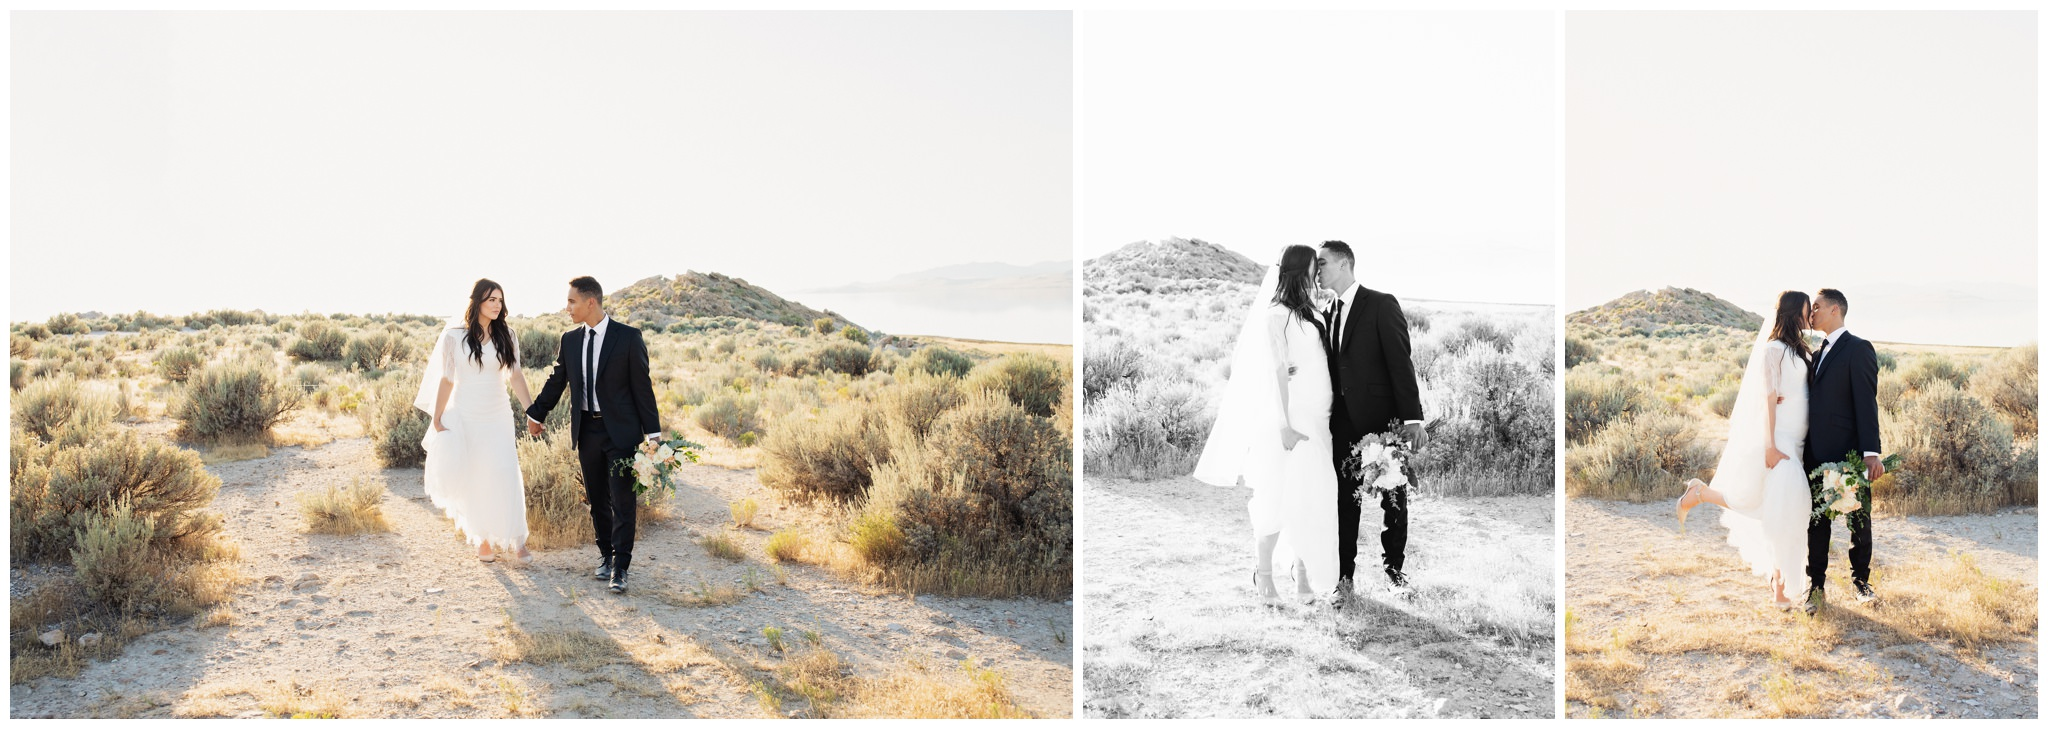 Heel pop kiss. Bride and groom kissing on their wedding day. Bride and groom portraits. Creative poses at Antelope Island